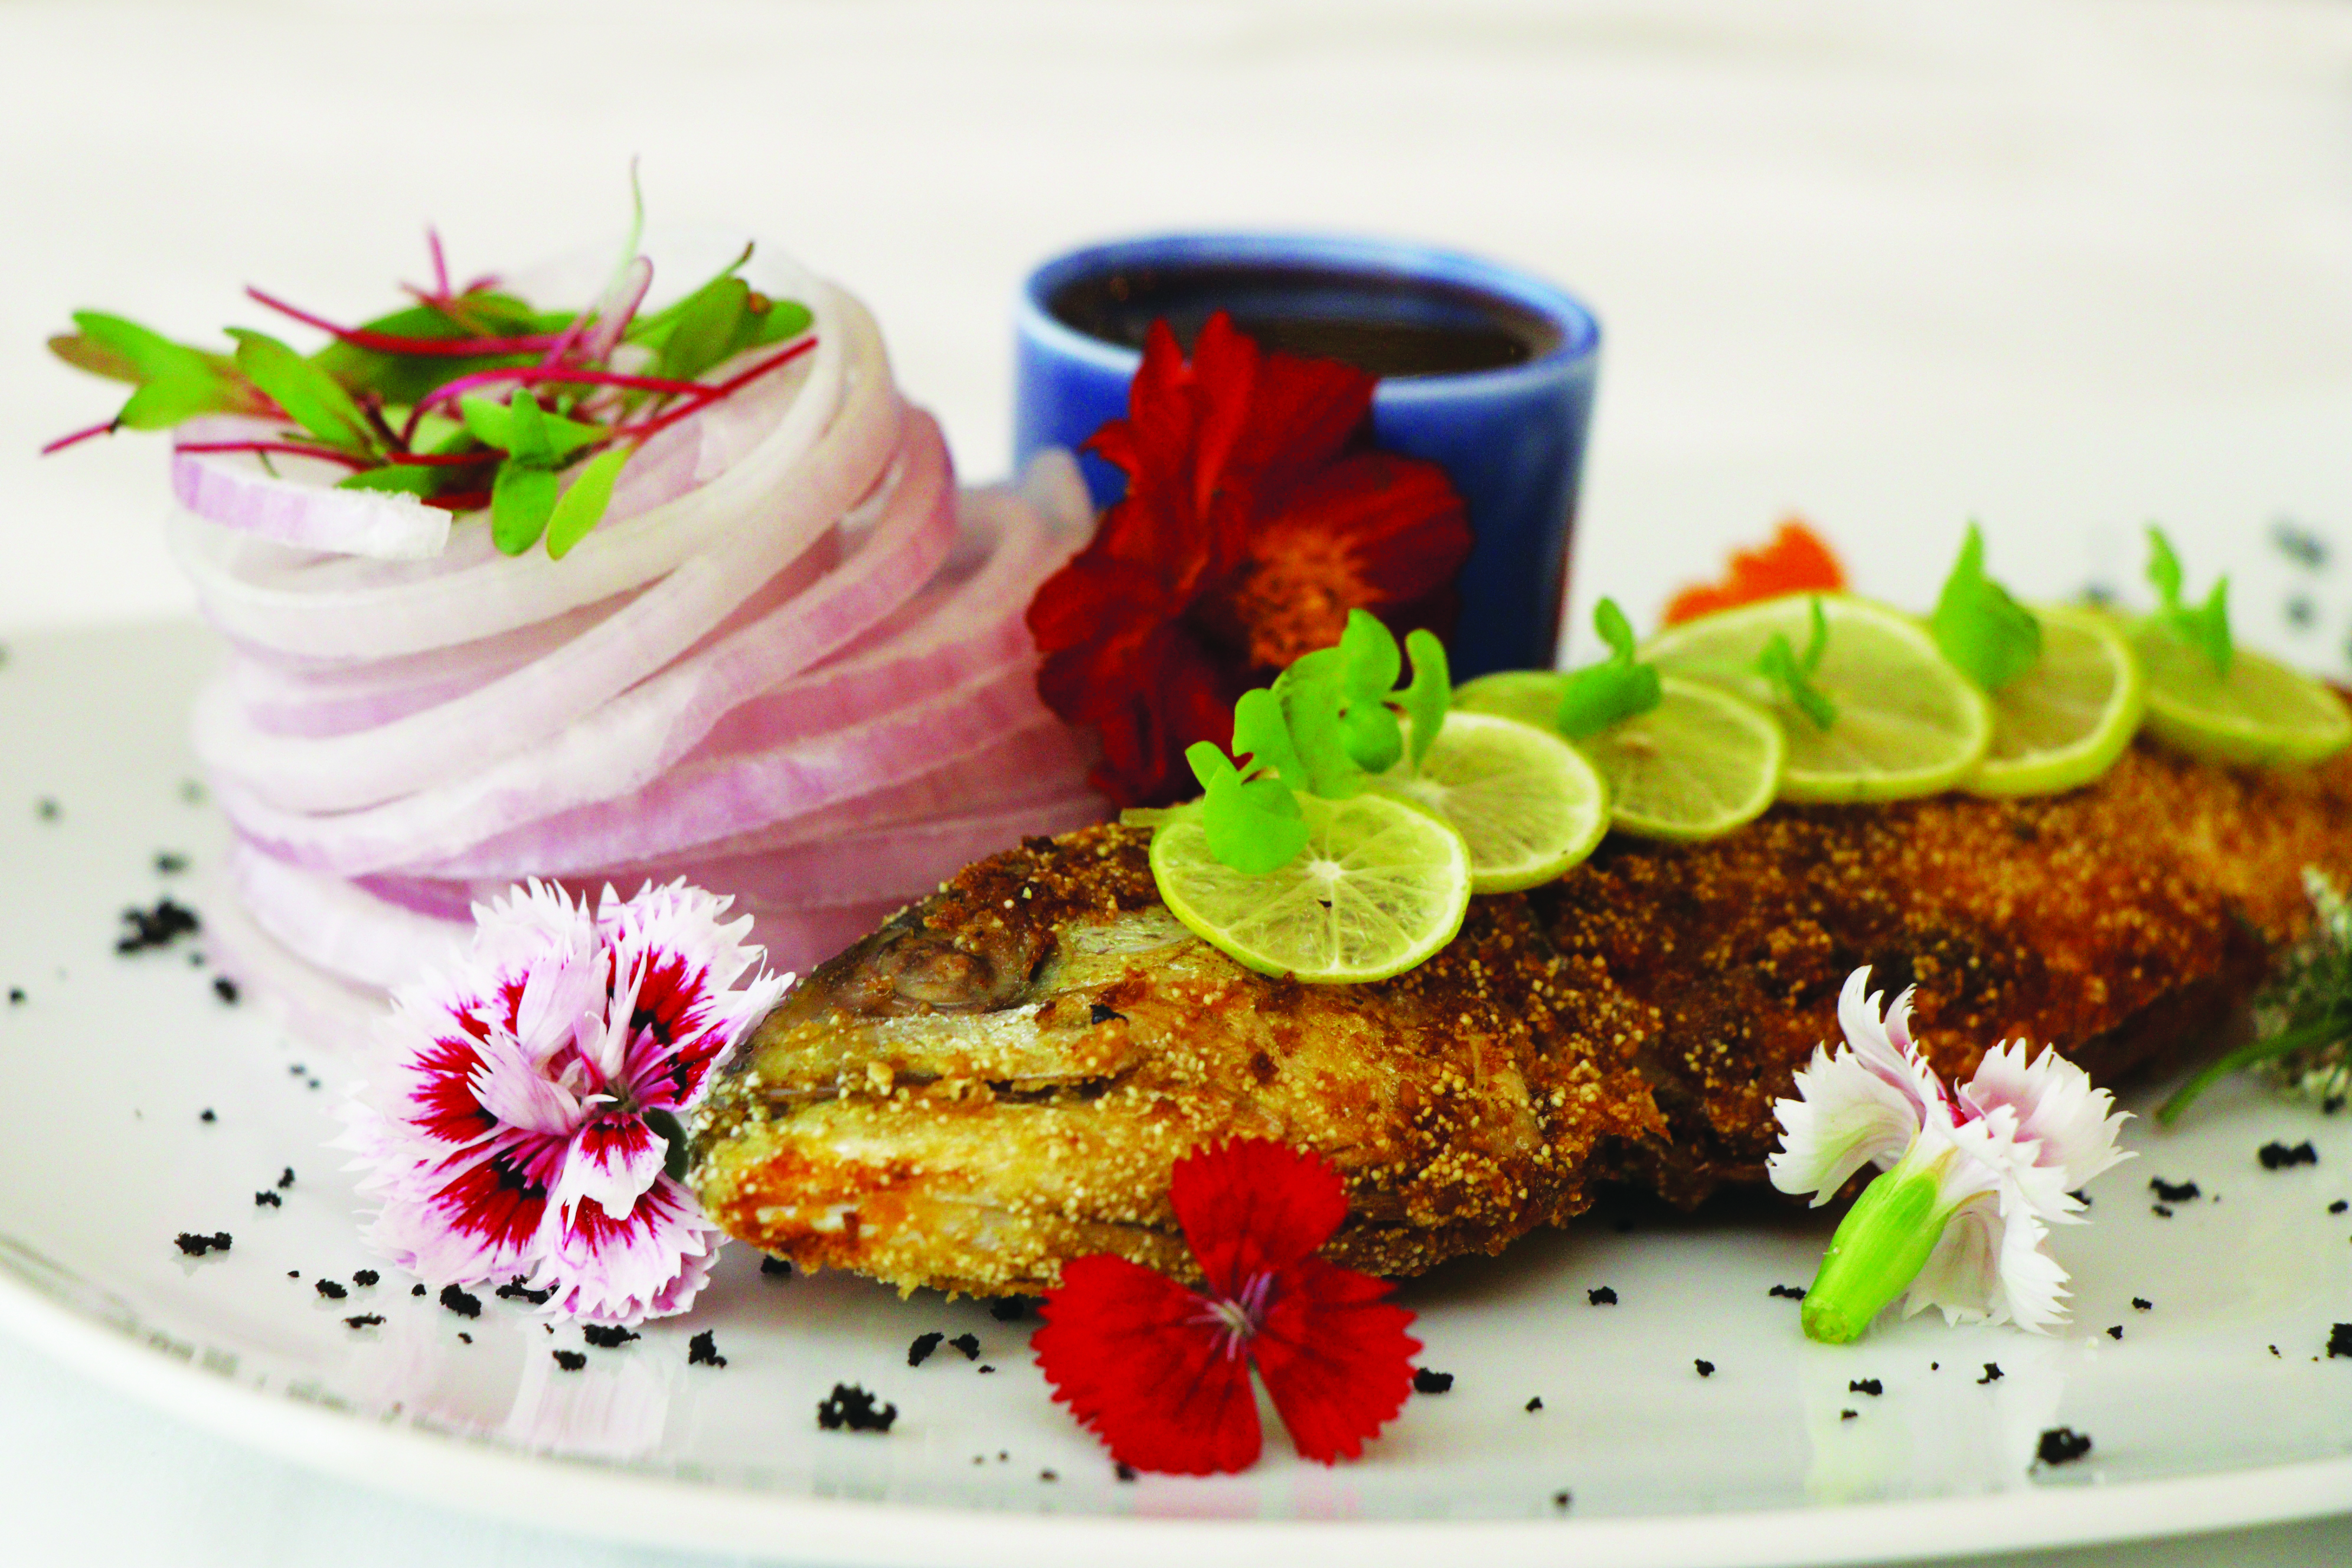 Hospitality Biz India Organic Menu Is The Eco System Ready